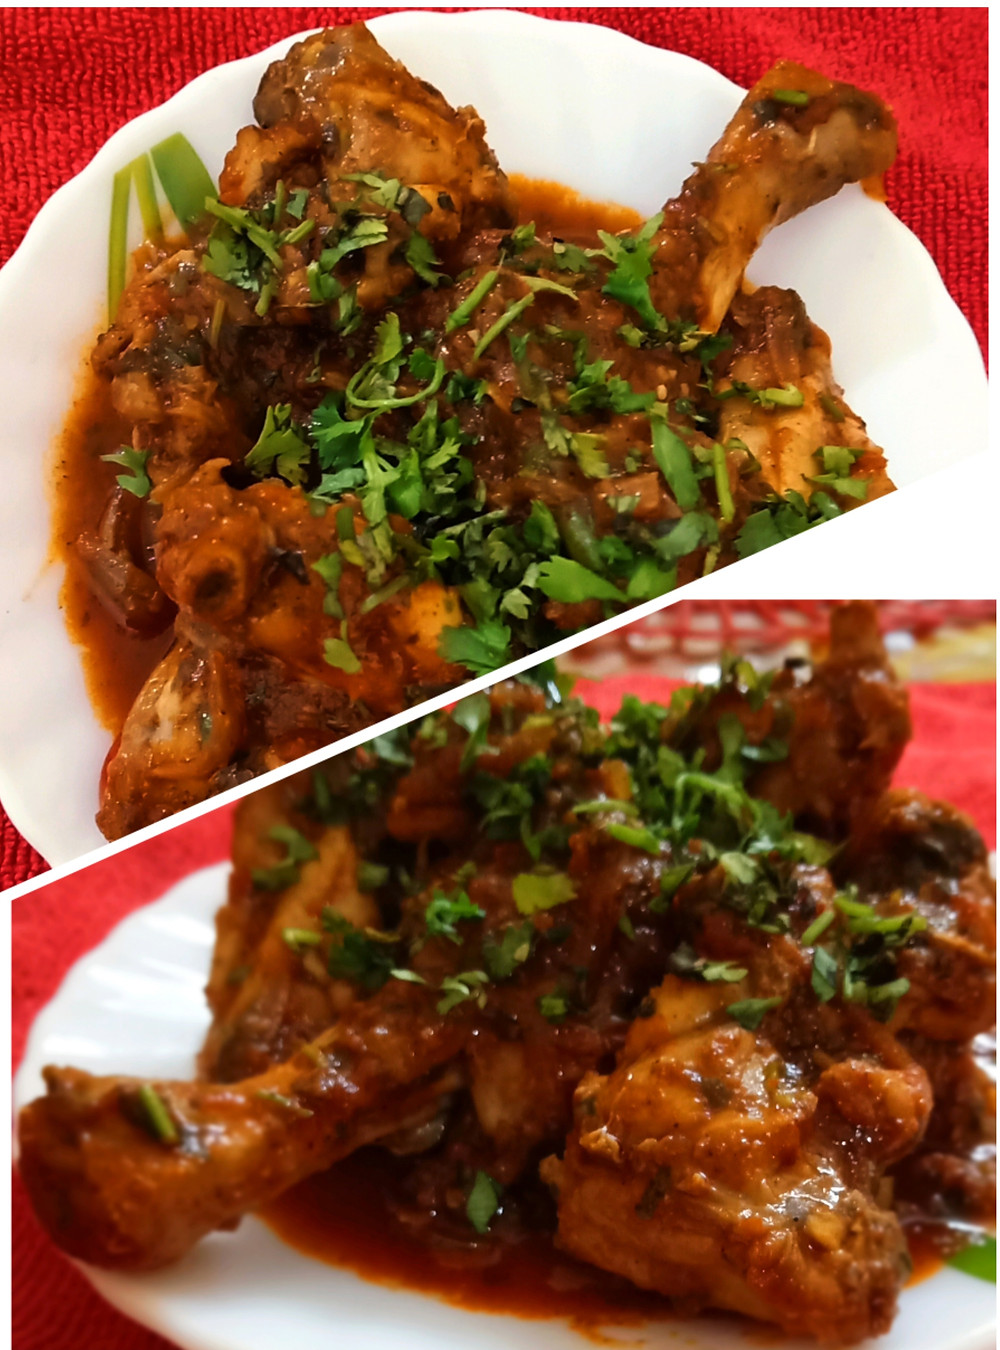 Peshawari Kadhai is a specialty of Peshawar, Pakistan. It is one of the top favorite meals of many Indians too. The aroma is awesome and delicious to taste.